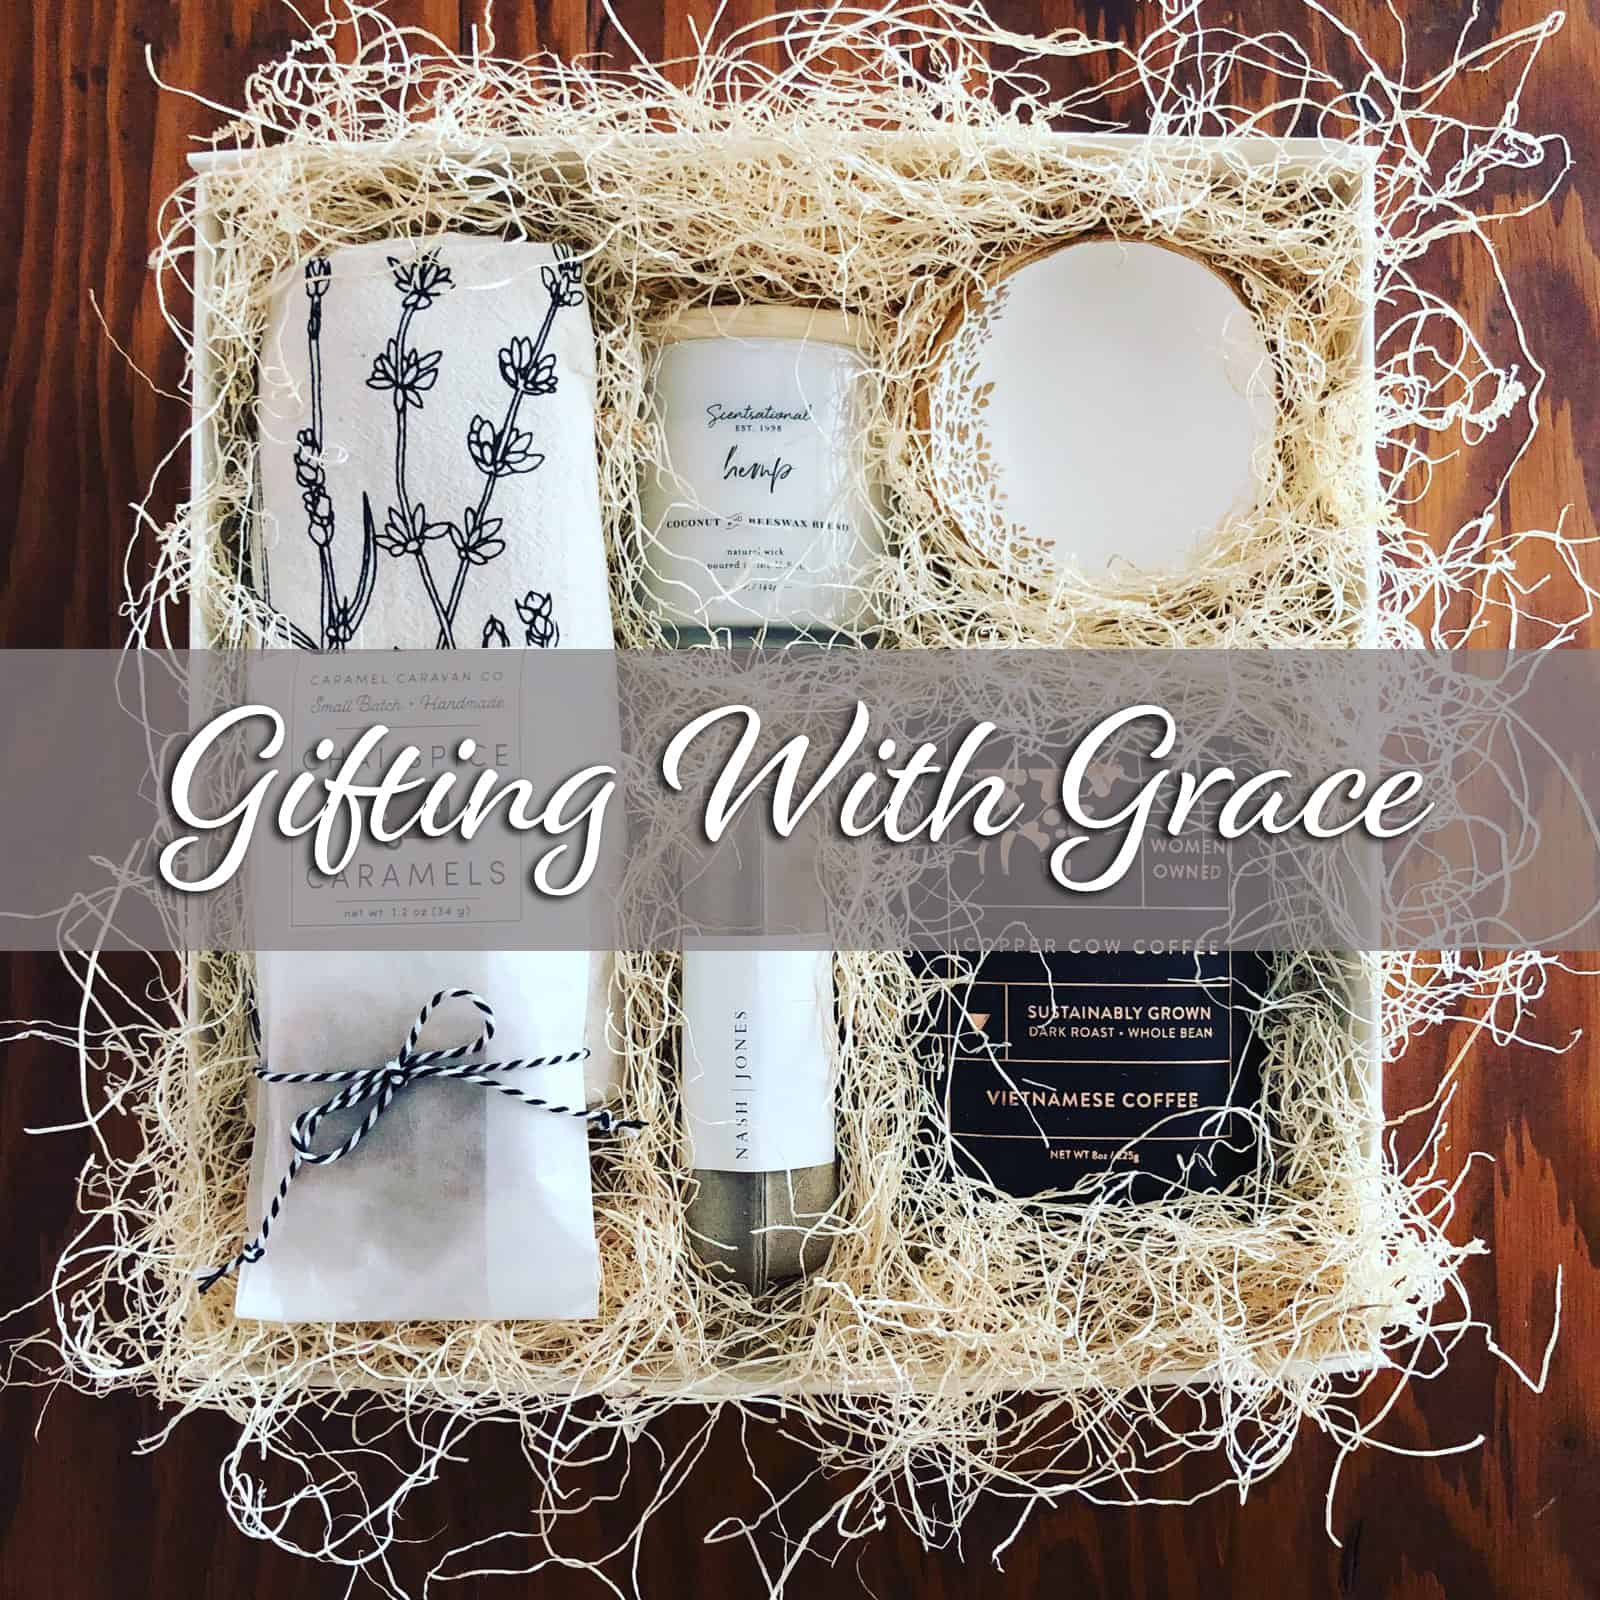 Gifting With Grace Gift Baskets